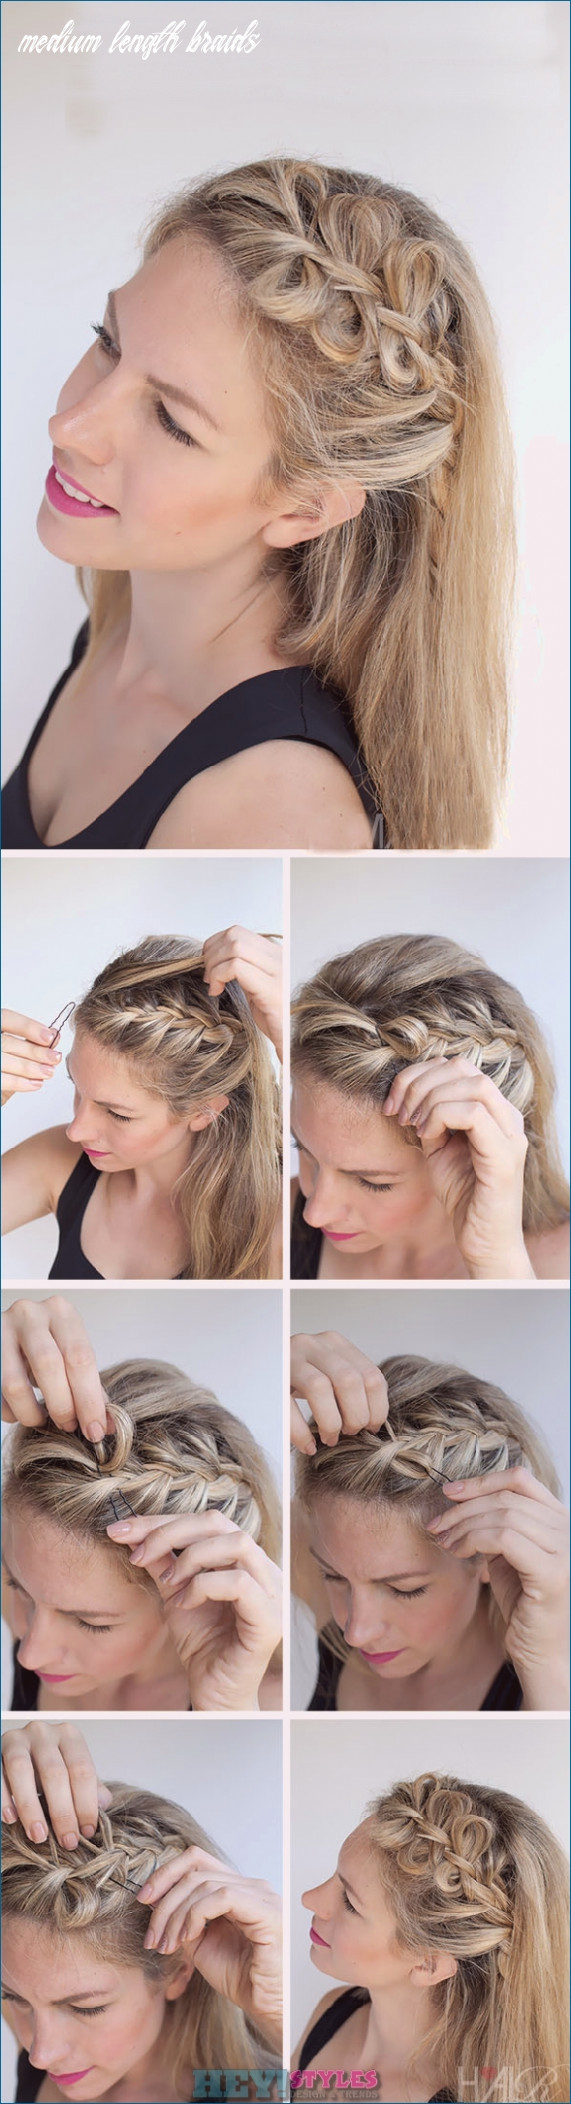 Braided shoulder length hair: 9 easy to use instructions for